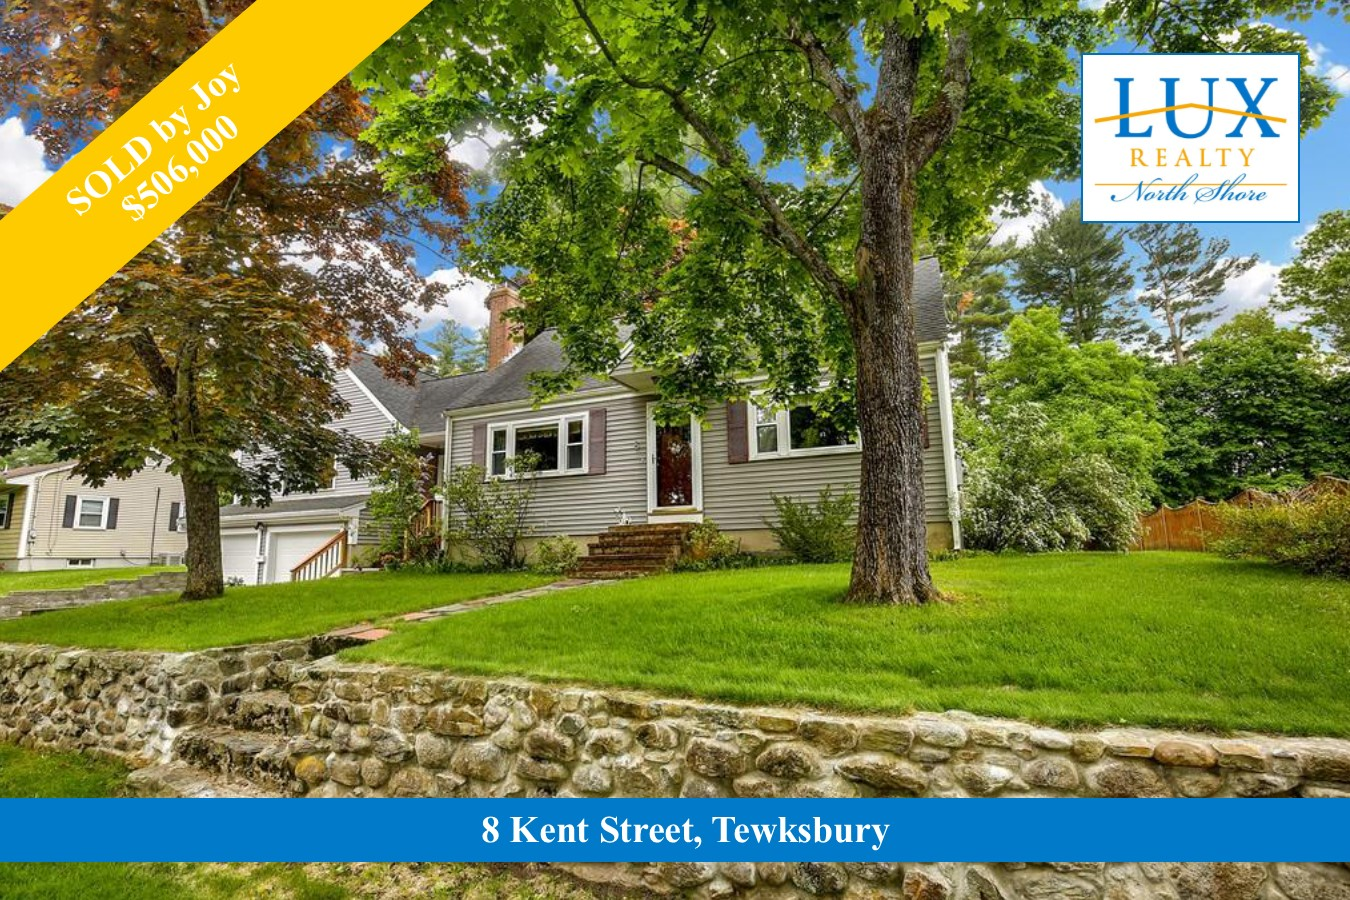 Tewksbury Homes for Sale